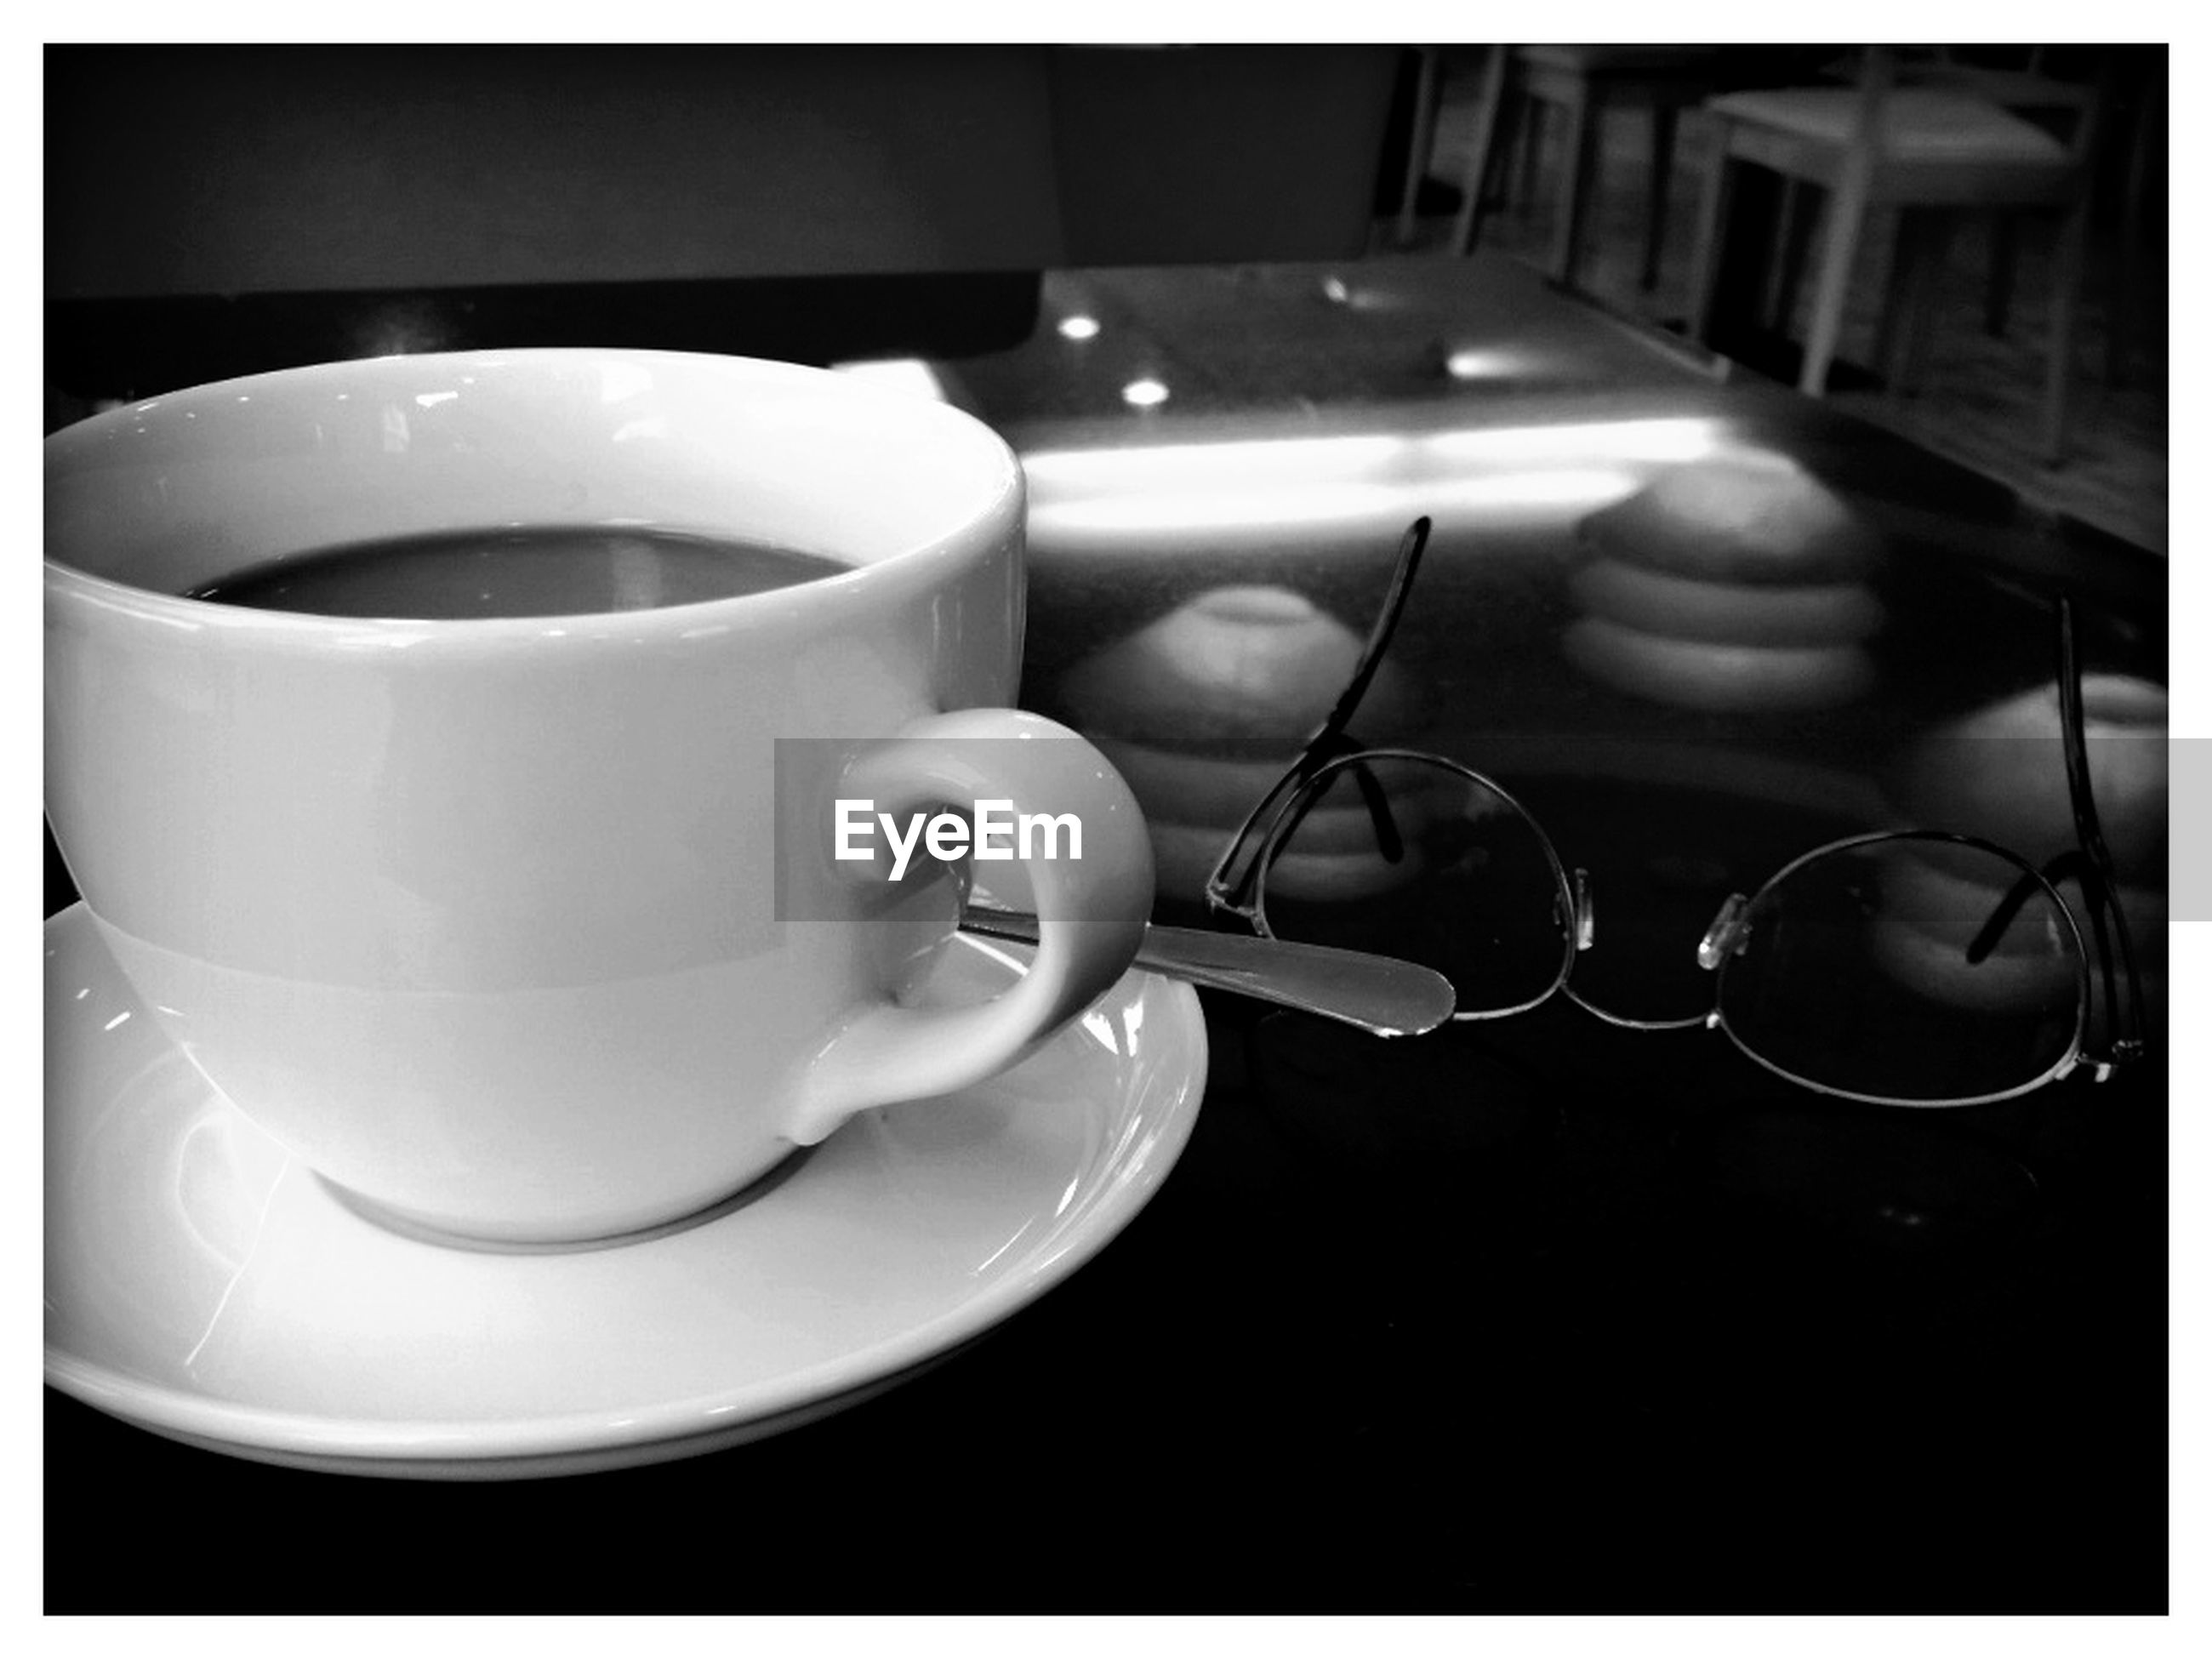 Close-up of coffee and eyeglasses on table